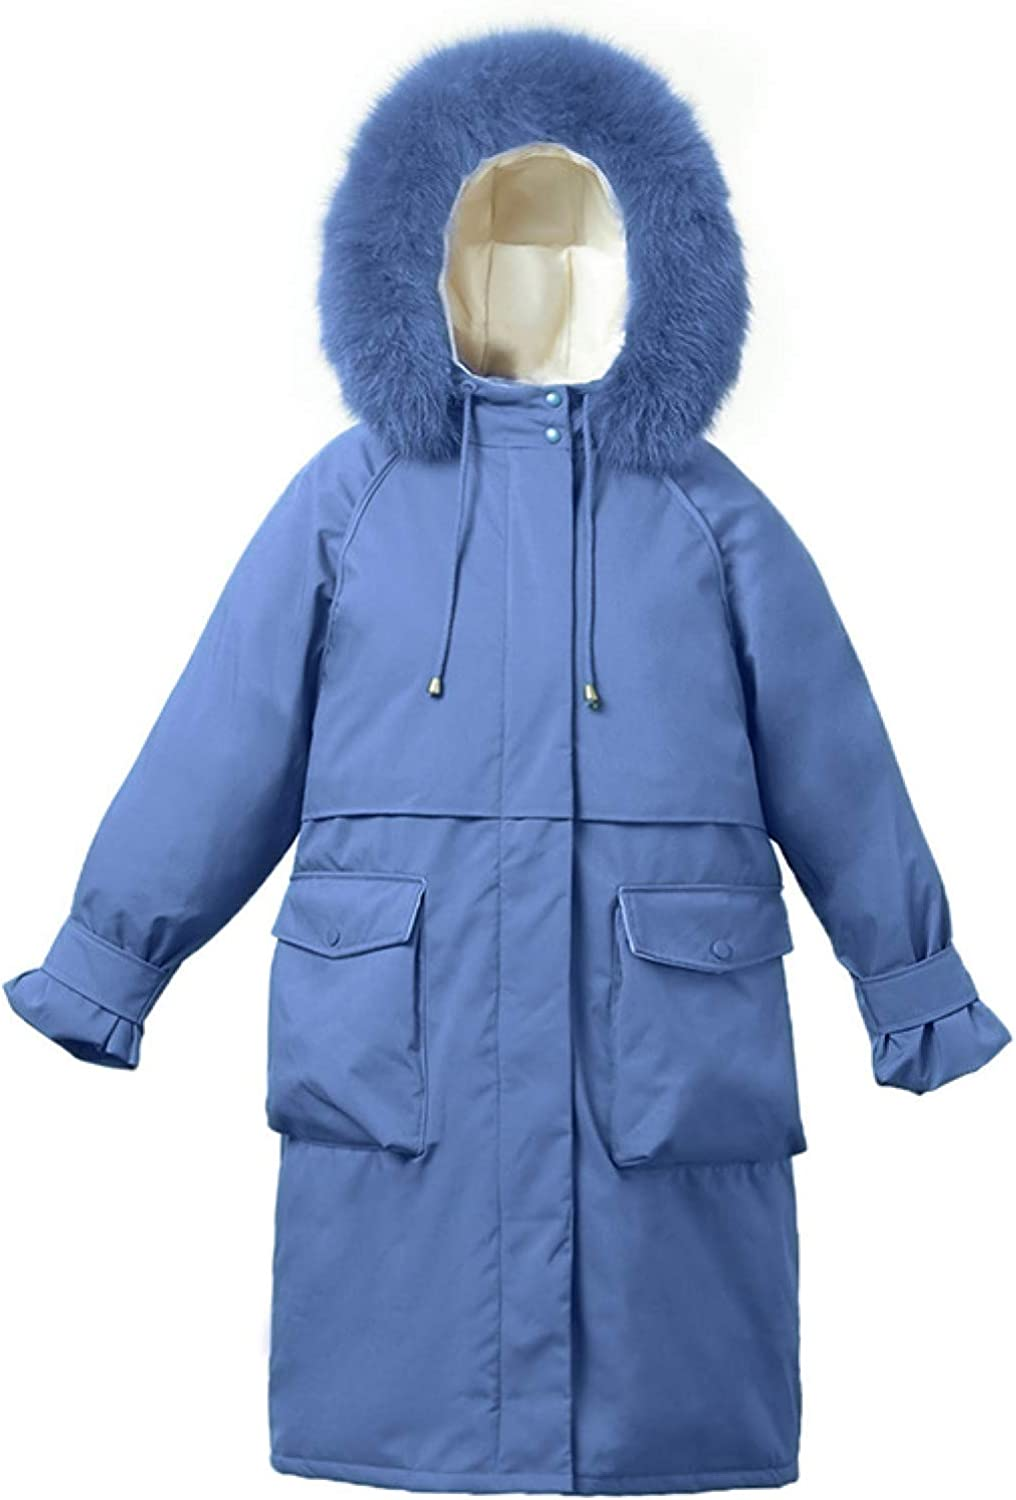 Ladies Lightweight Padding Jacket Women's Long Winter Down Jackets with Faux Fur Trim